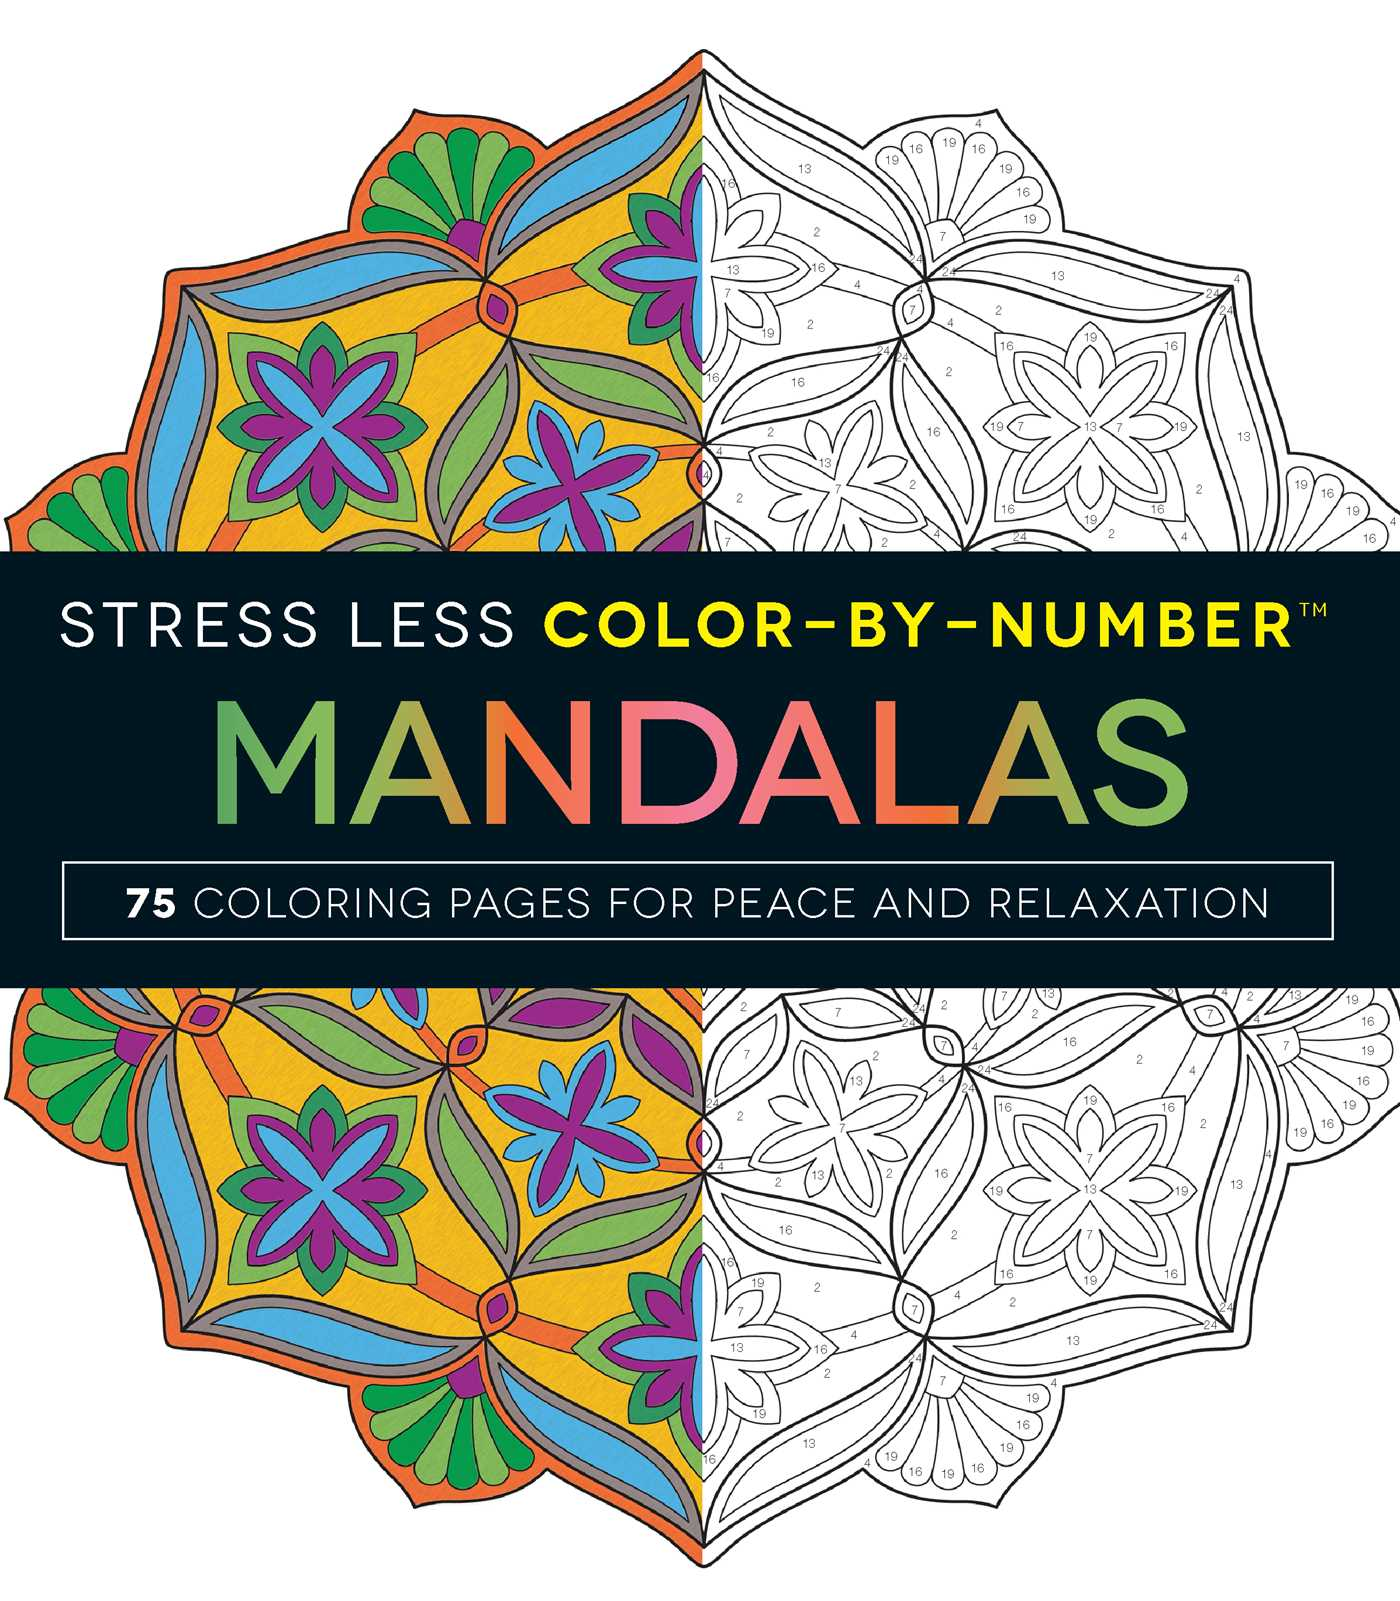 Book Cover Image Jpg Stress Less Color By Number Mandalas Trade Paperback 9781507201275